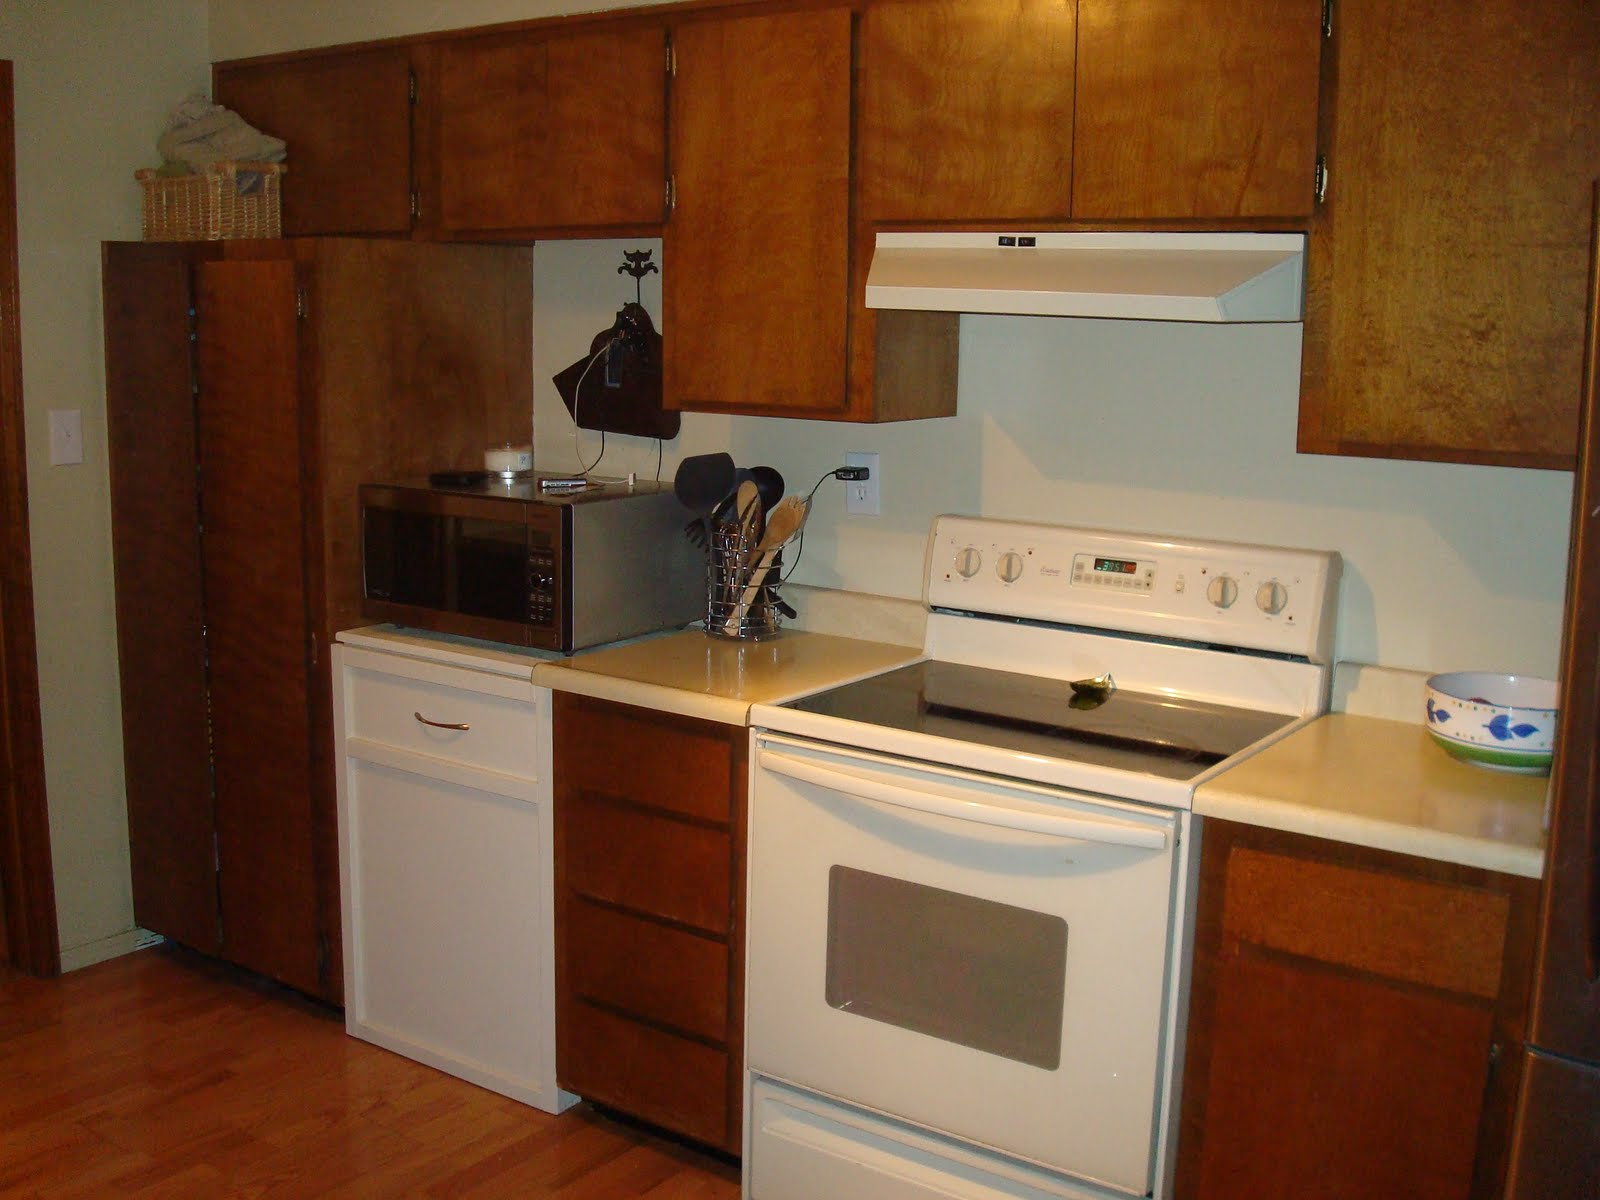 Just me low budget kitchen remodel for Renovate a kitchen on a budget